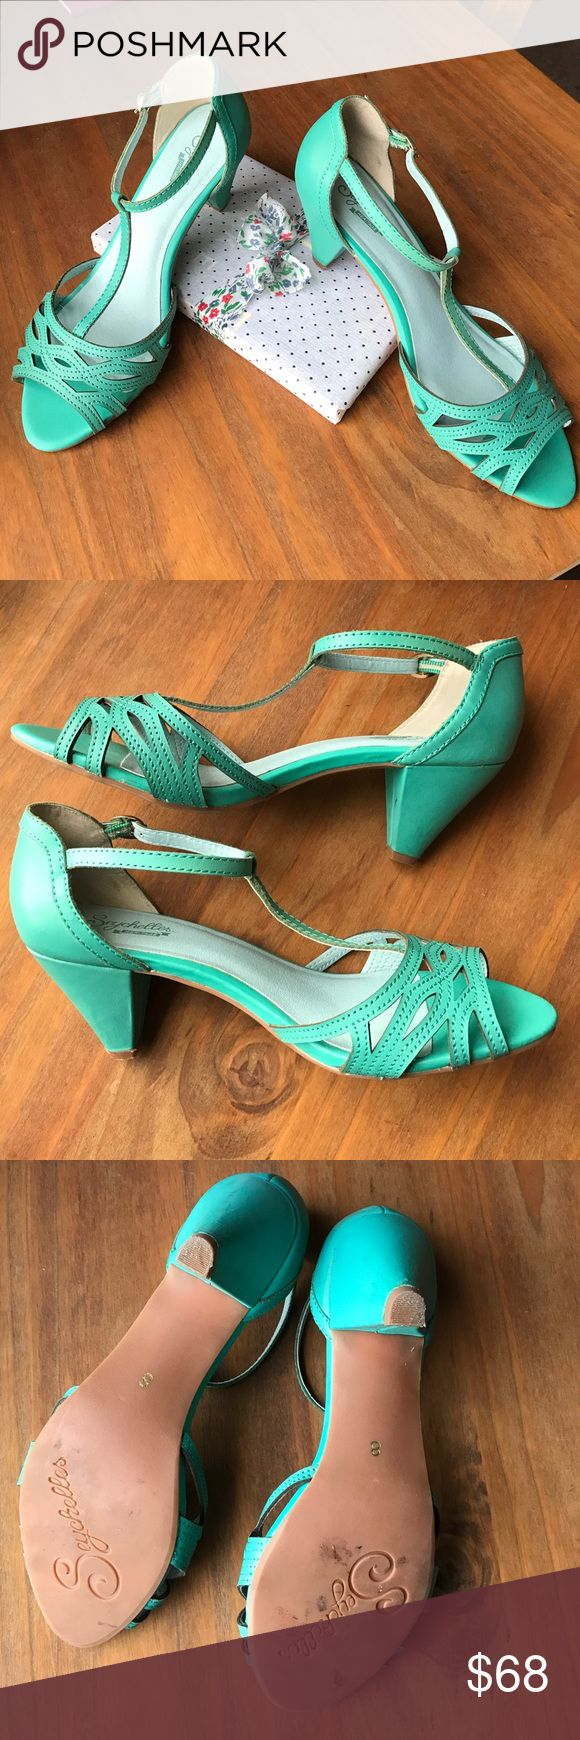 Seychelle's strapped turquoise heel. Worn once! 8 Worn once. In next to new condition. Small markings on the heels. 👠 Gorgeous shoe! Seychelles Shoes Heels